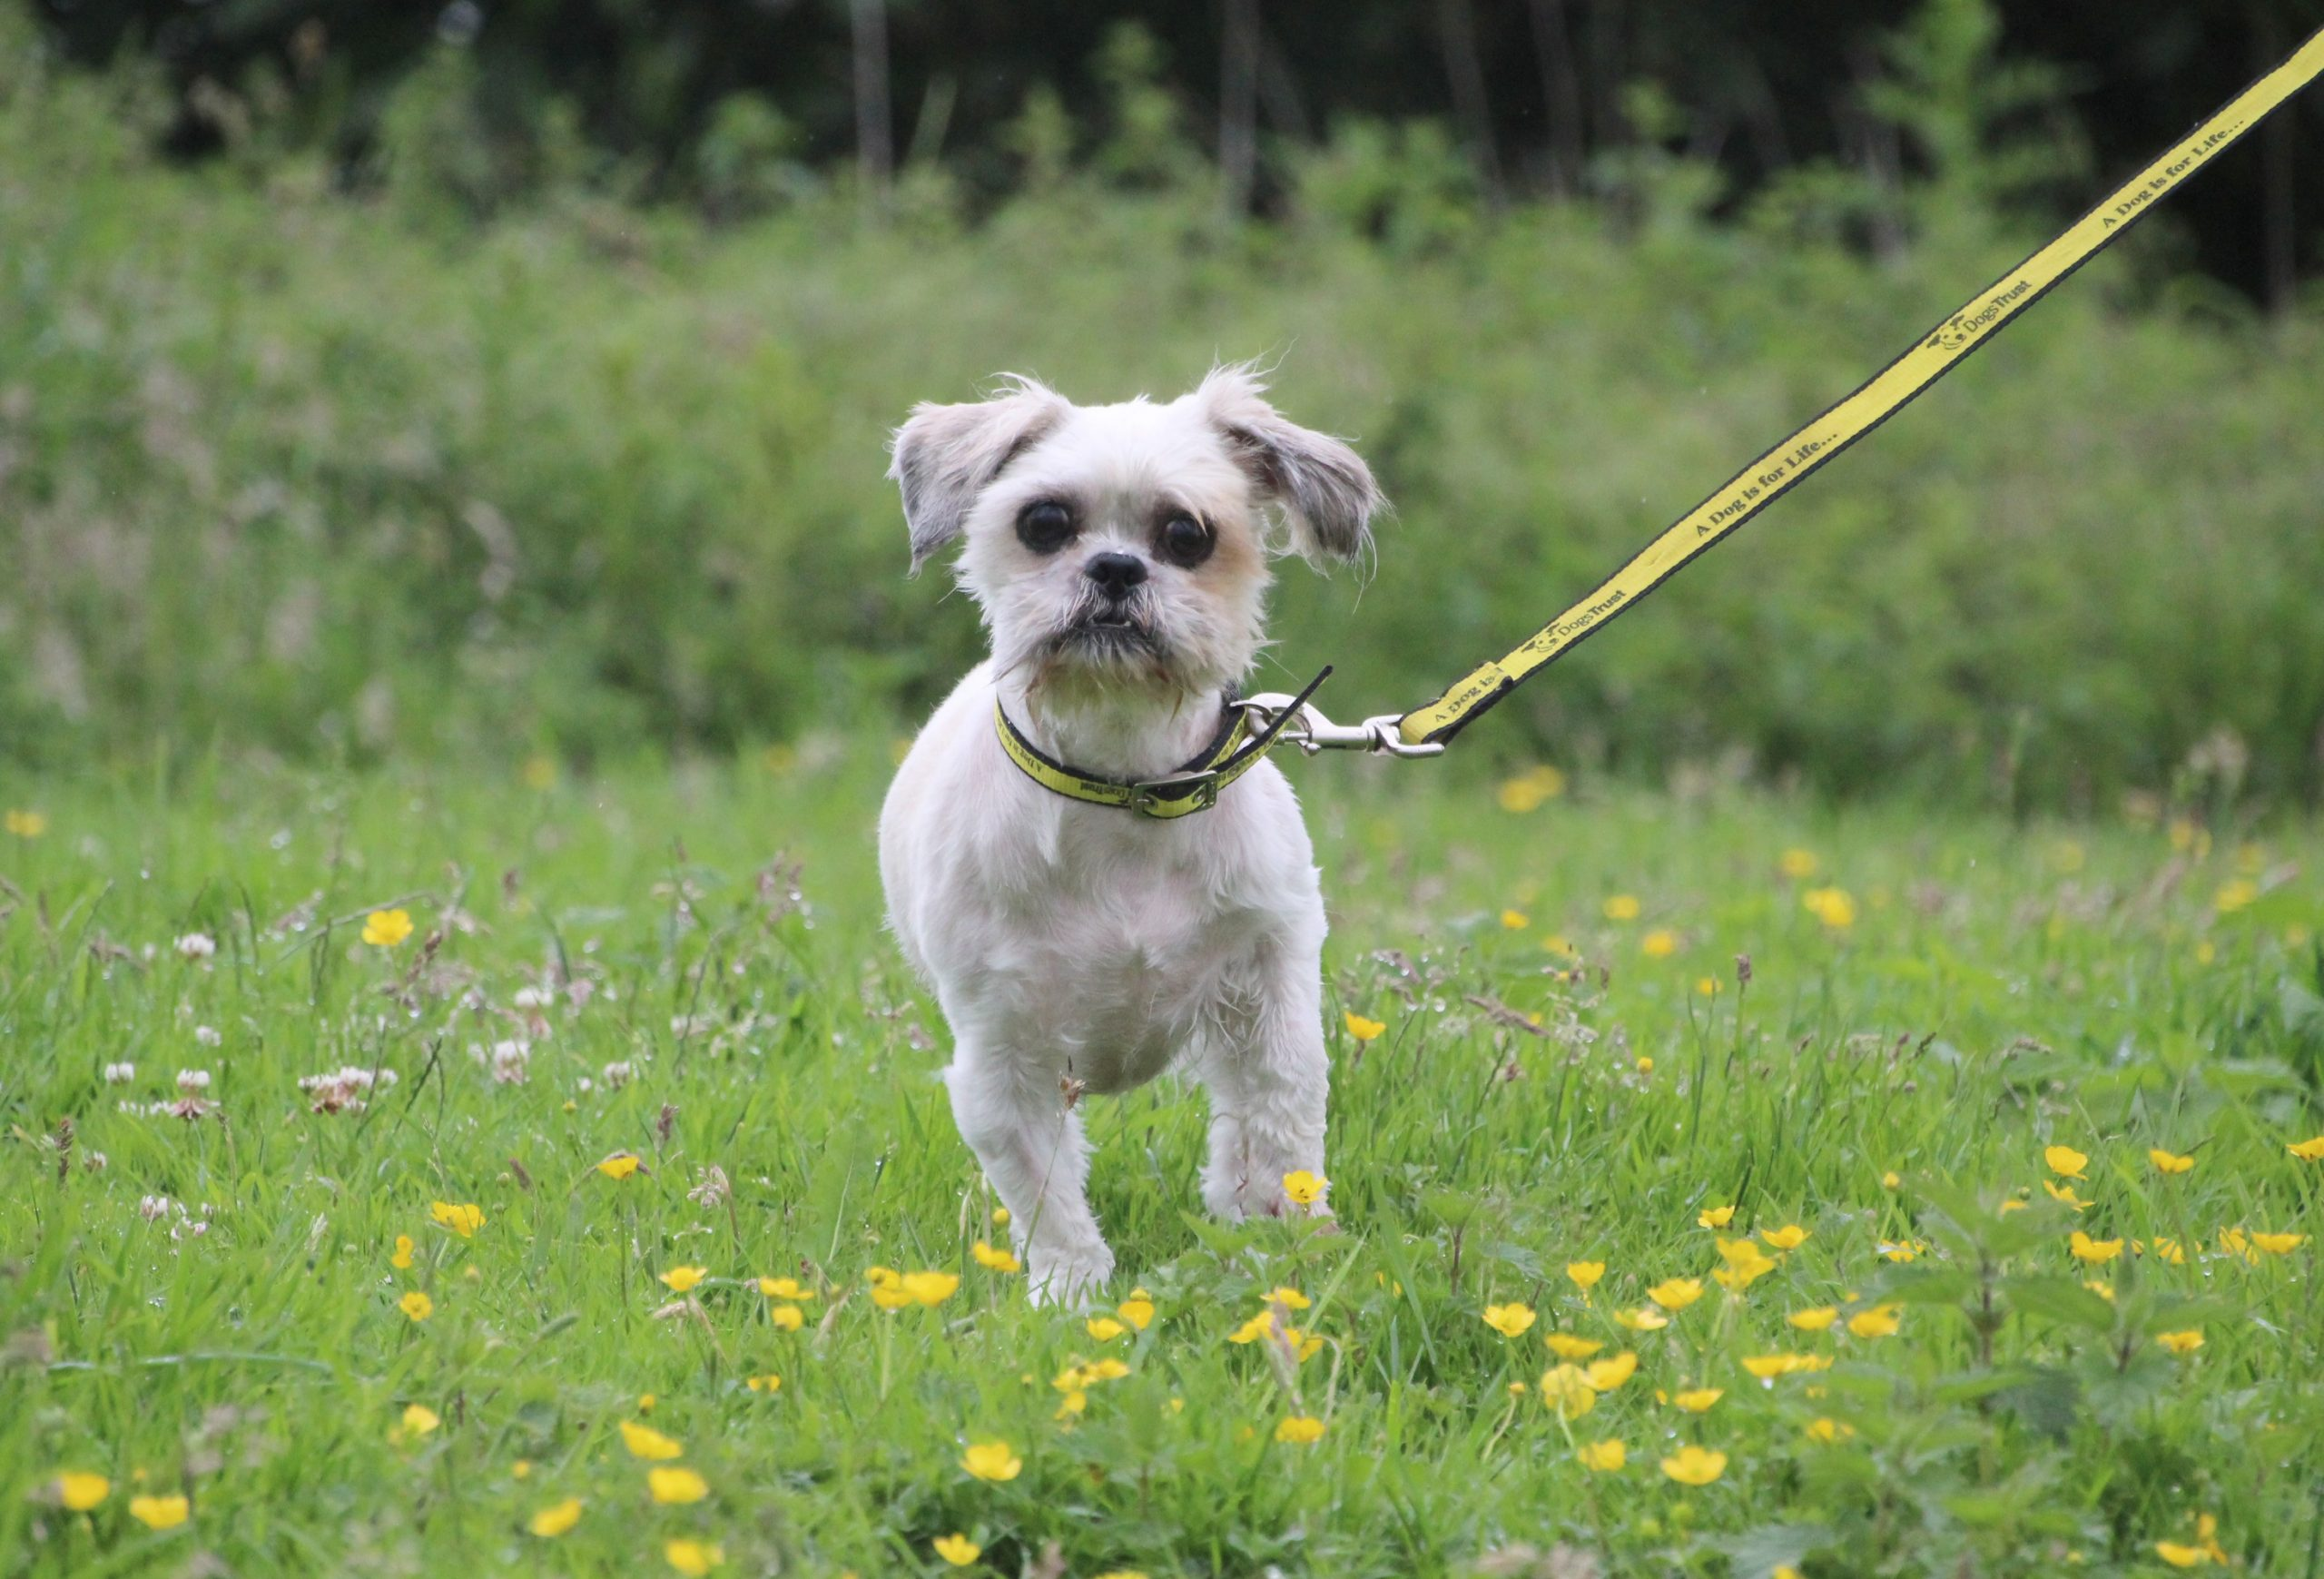 A much happier looking Lhasa Apso white dog after a major hair cut. You can see his big grown eyes now. He is on a yellow lead running through short grass dotted with buttercups. (Credit: Dogs Trust)